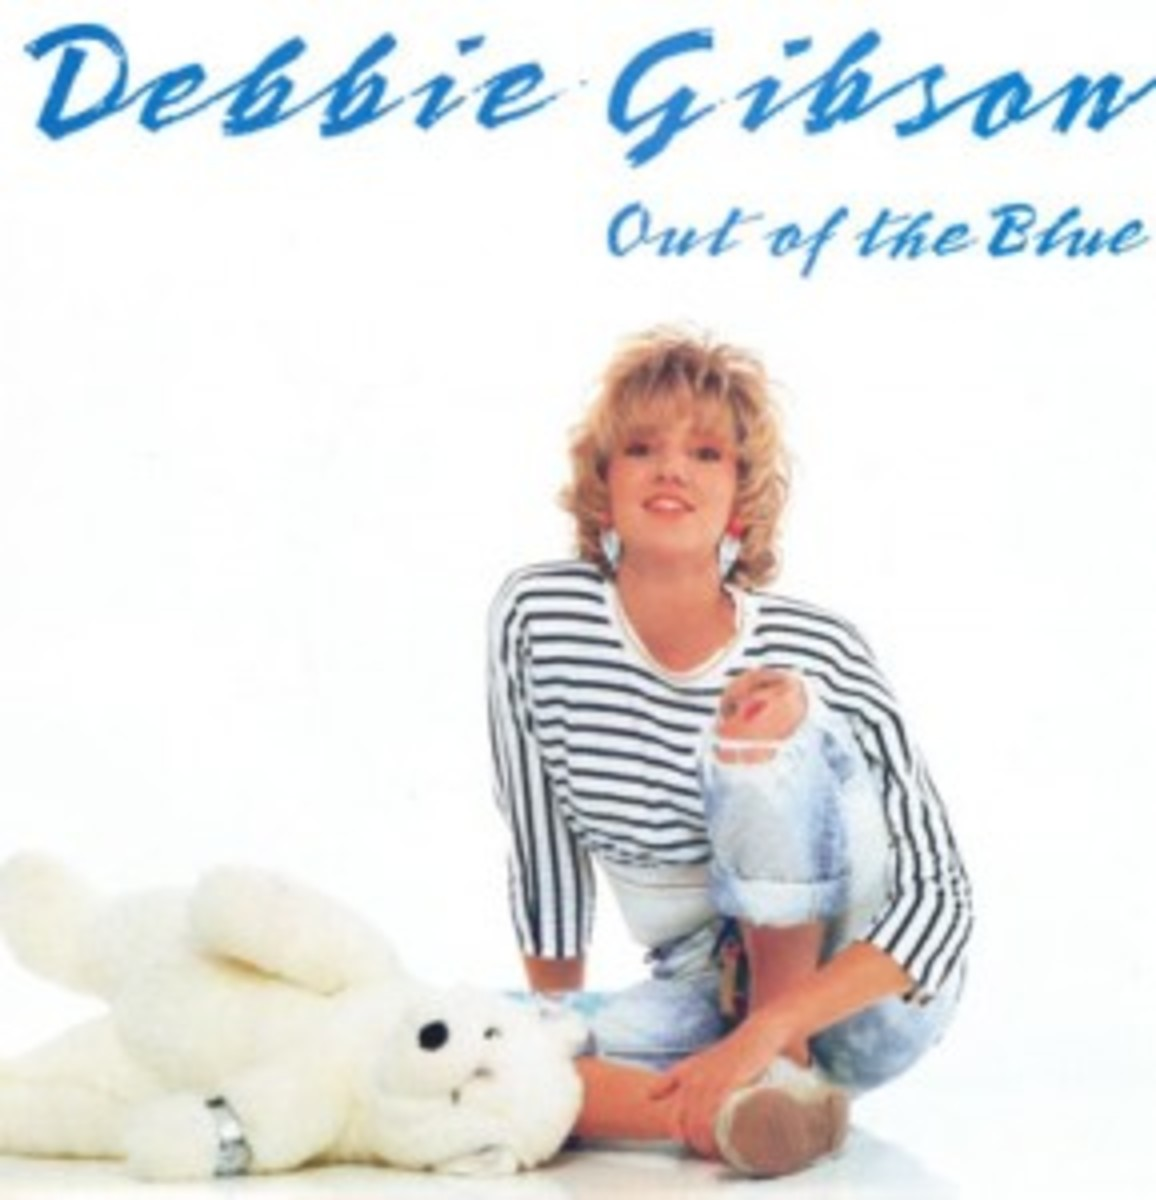 Debbie Gibson Out of The Blue picture sleeve